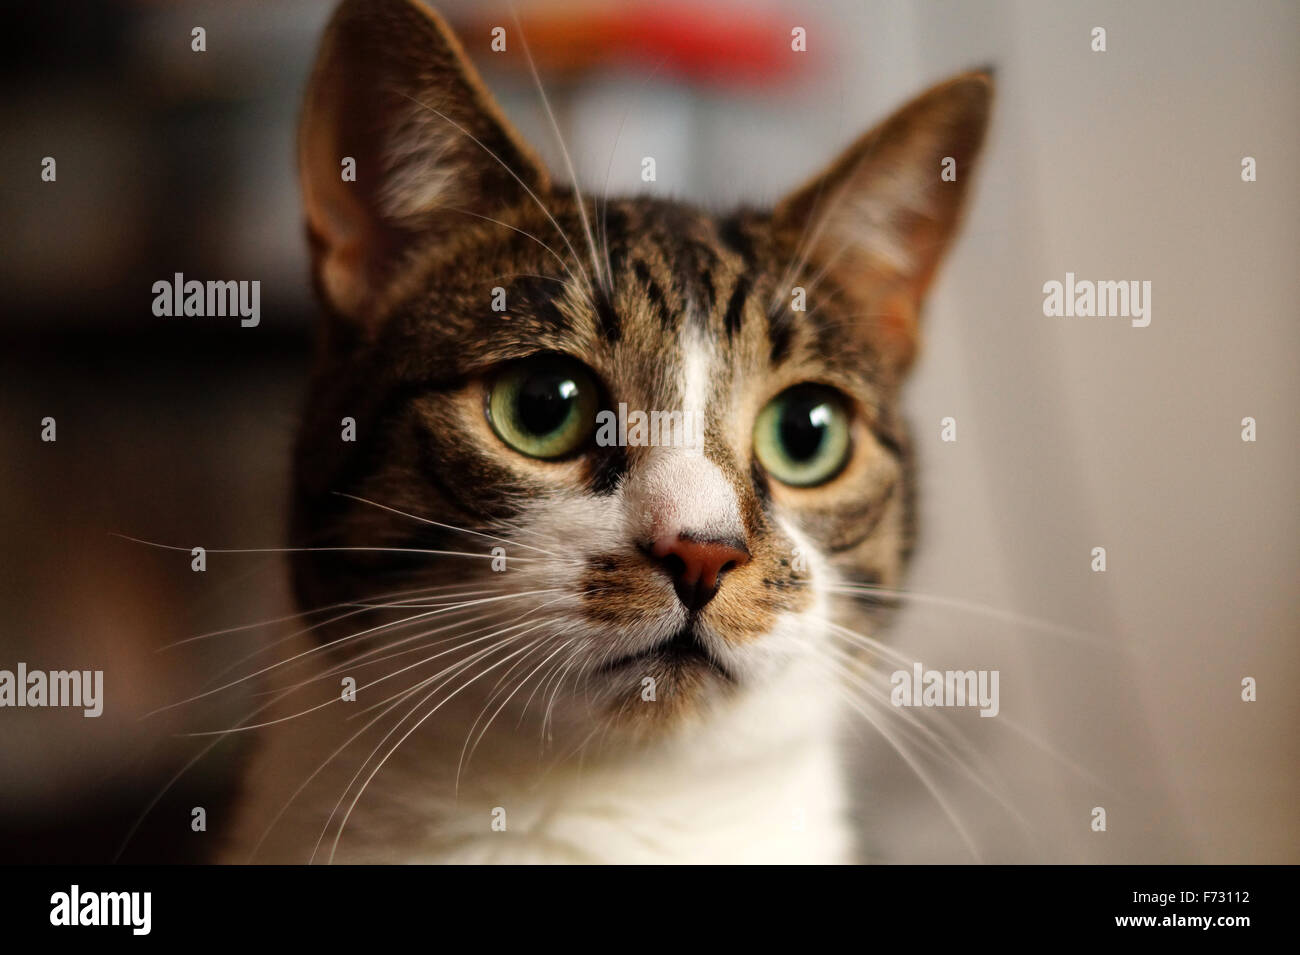 Beautiful House Cat - Stock Image